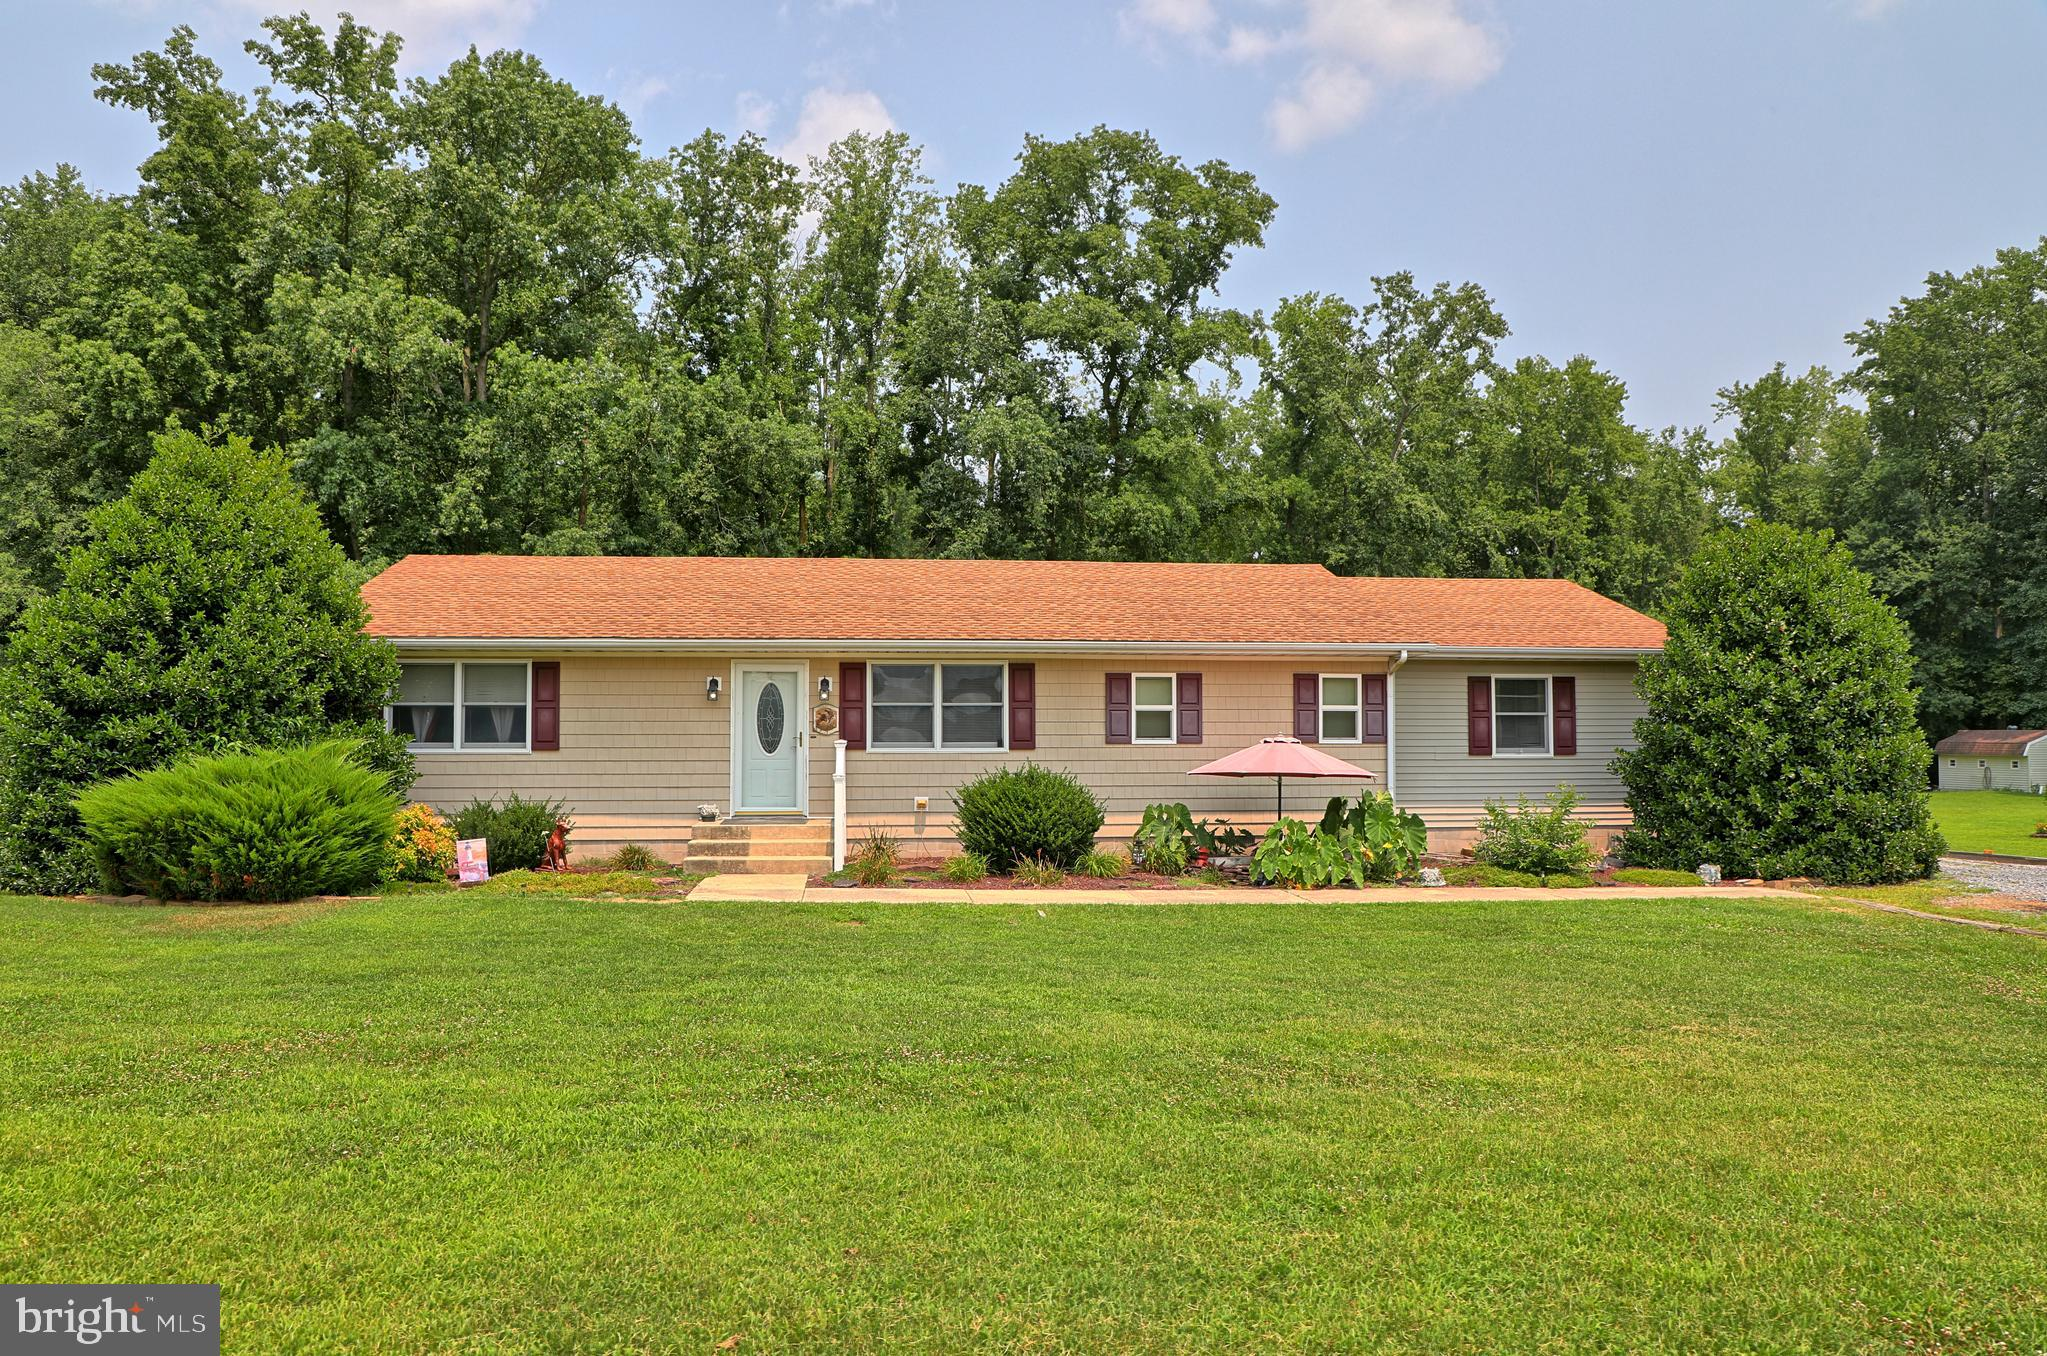 Nestled on over 2.5 acres in the quiet countryside of Georgetown, this 4 bedroom 2 bathroom rancher